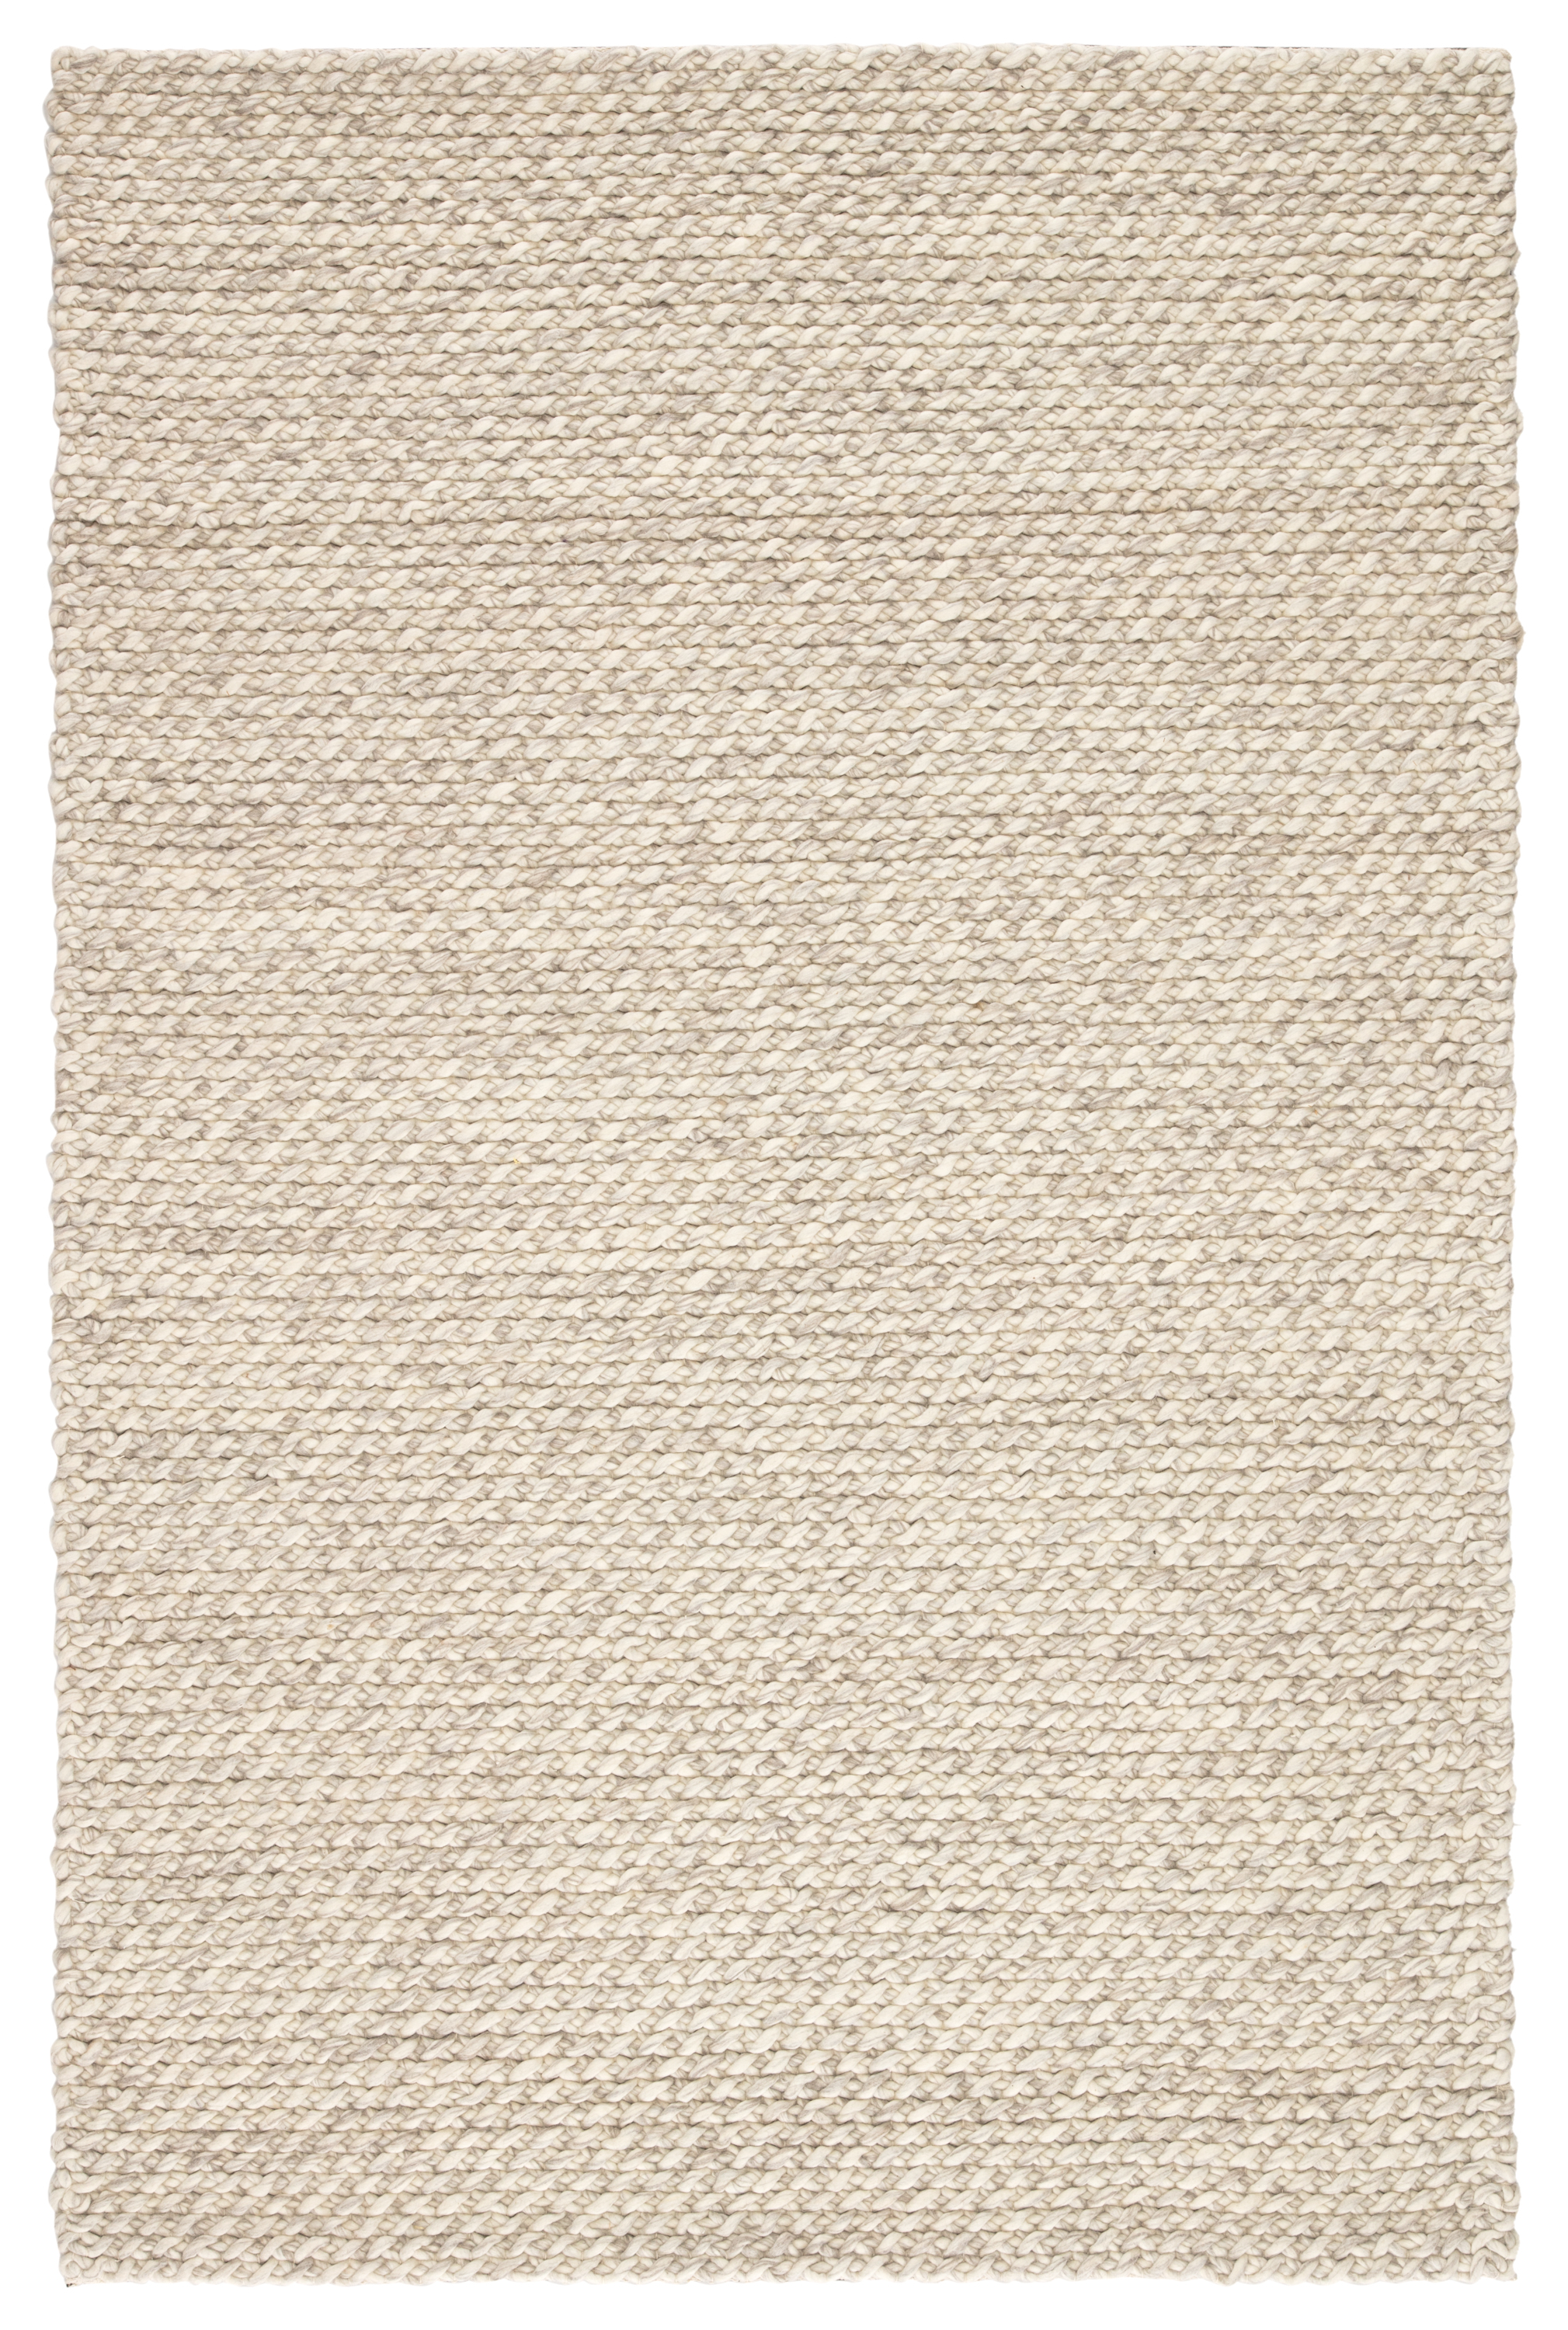 Jaipur Living Alta Handmade Solid Gray/ White Area Rug